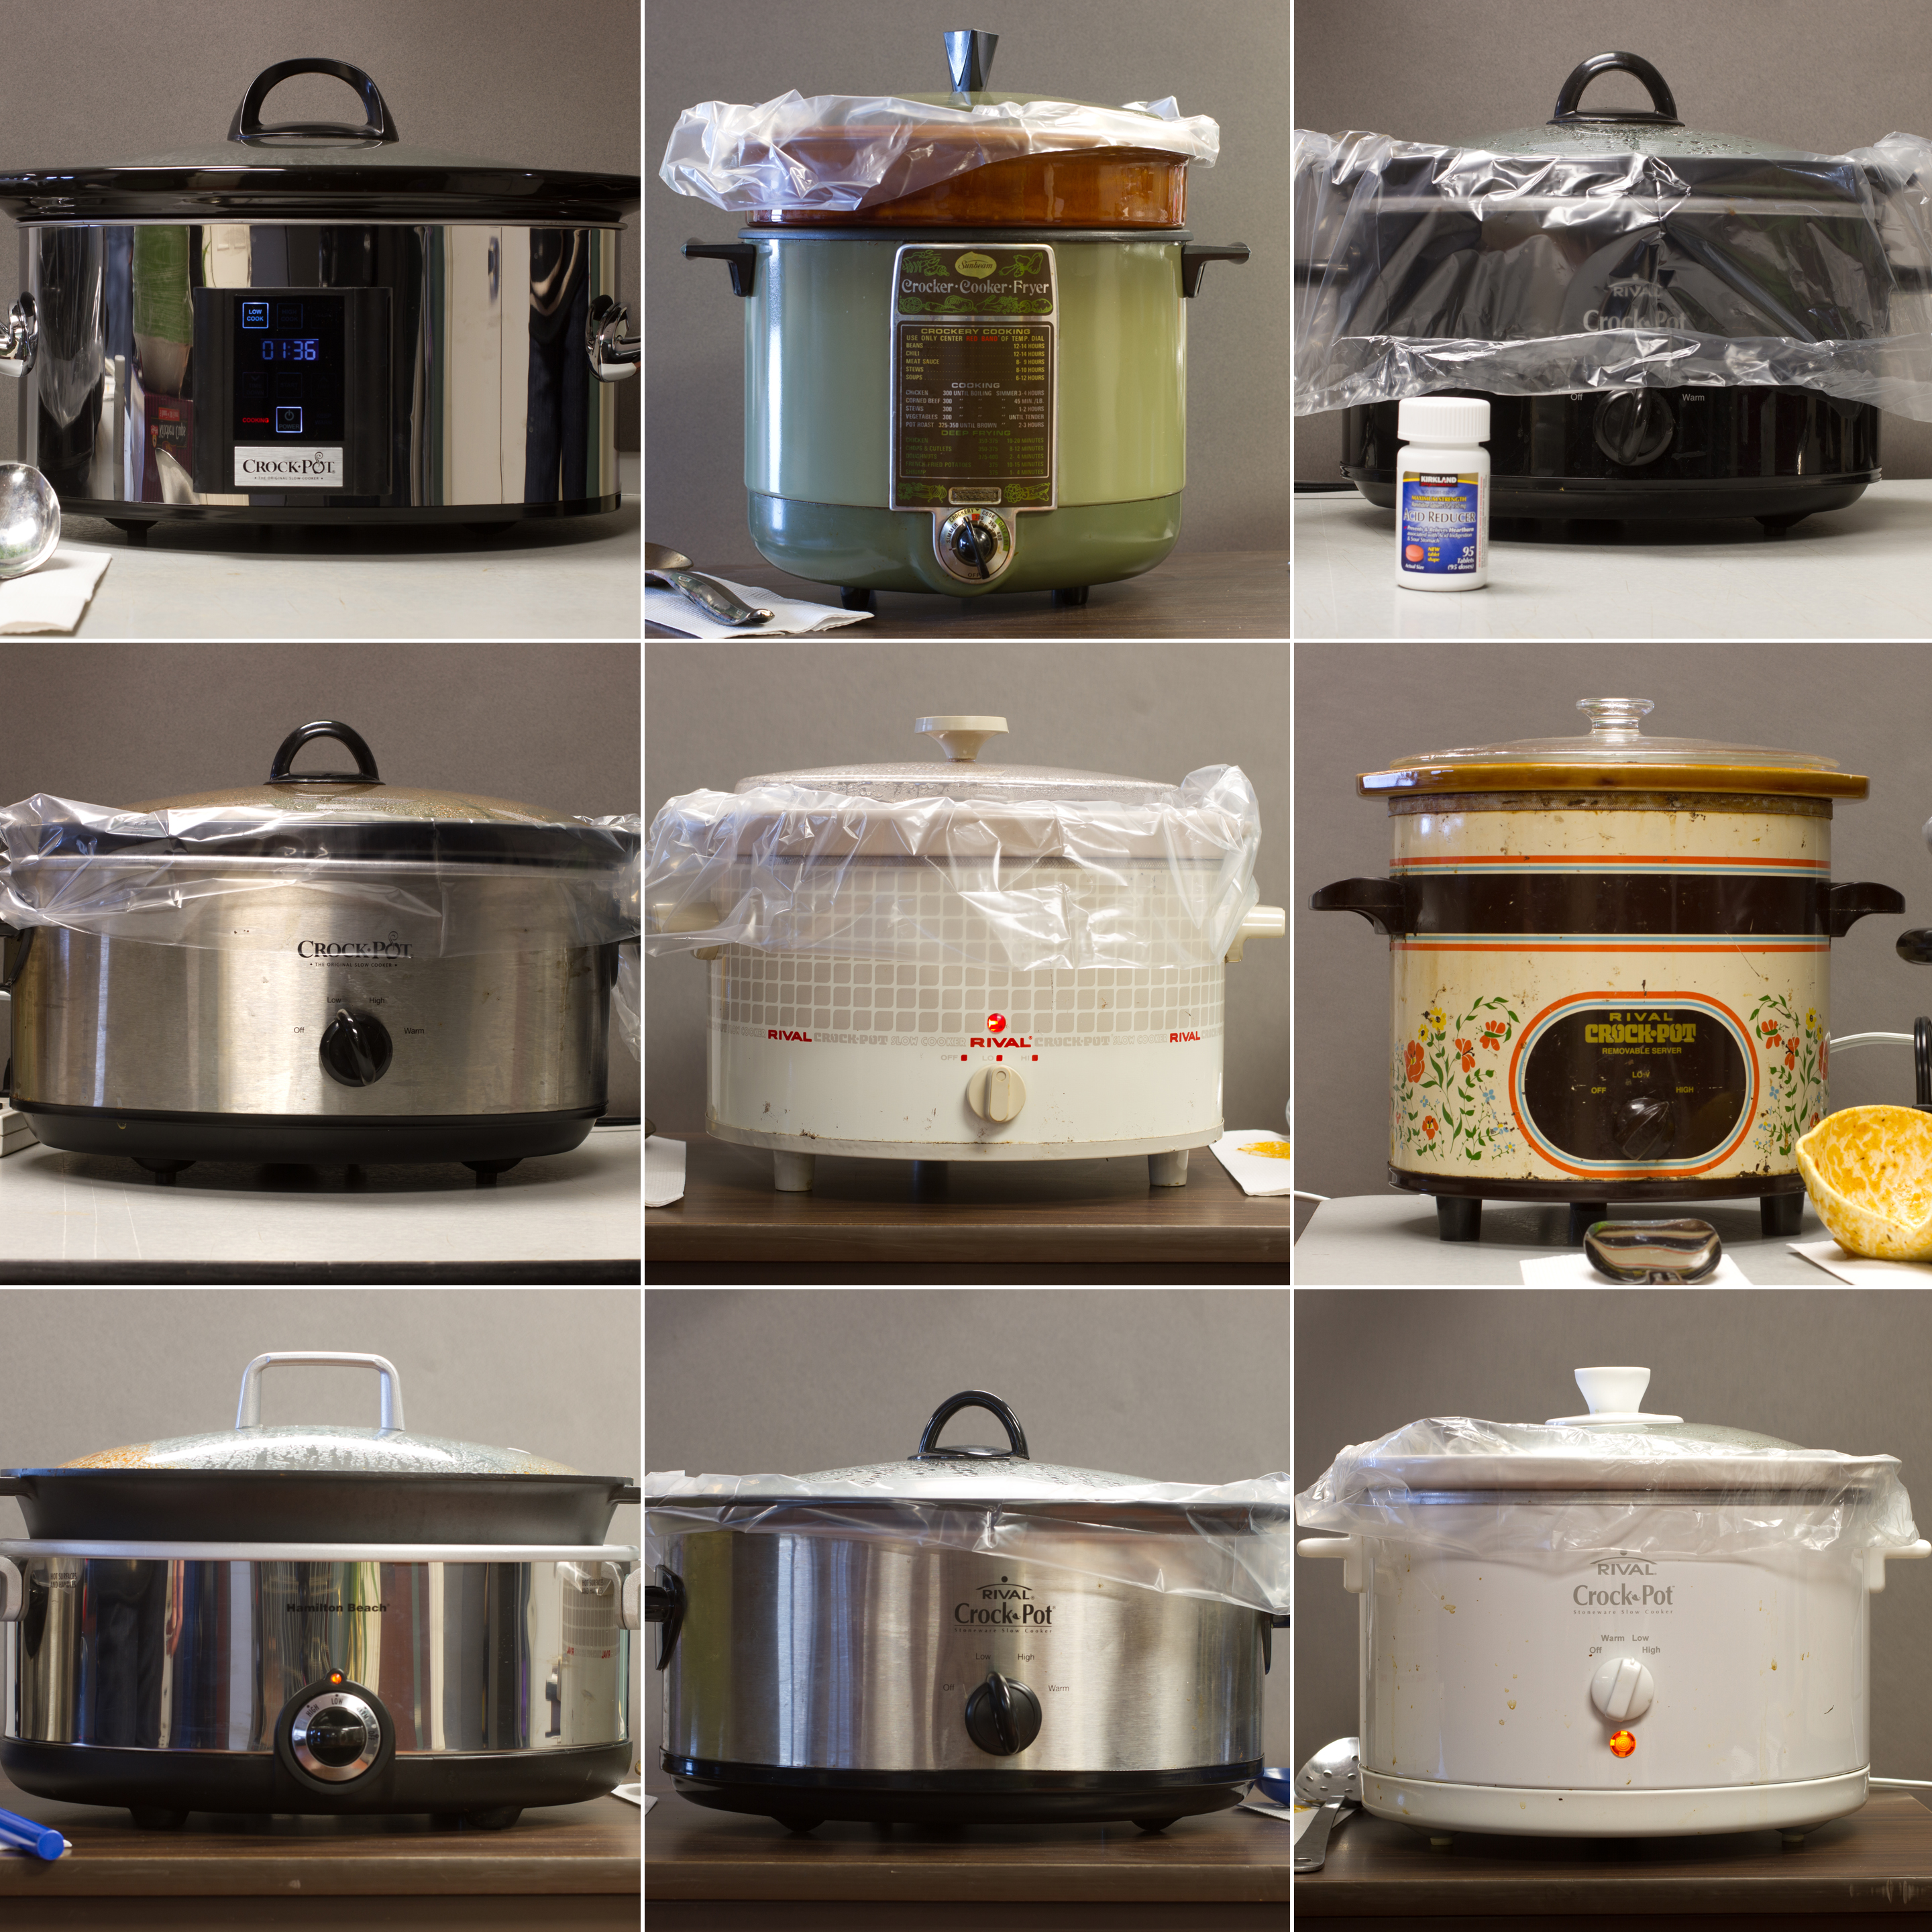 The Crockpot bunch